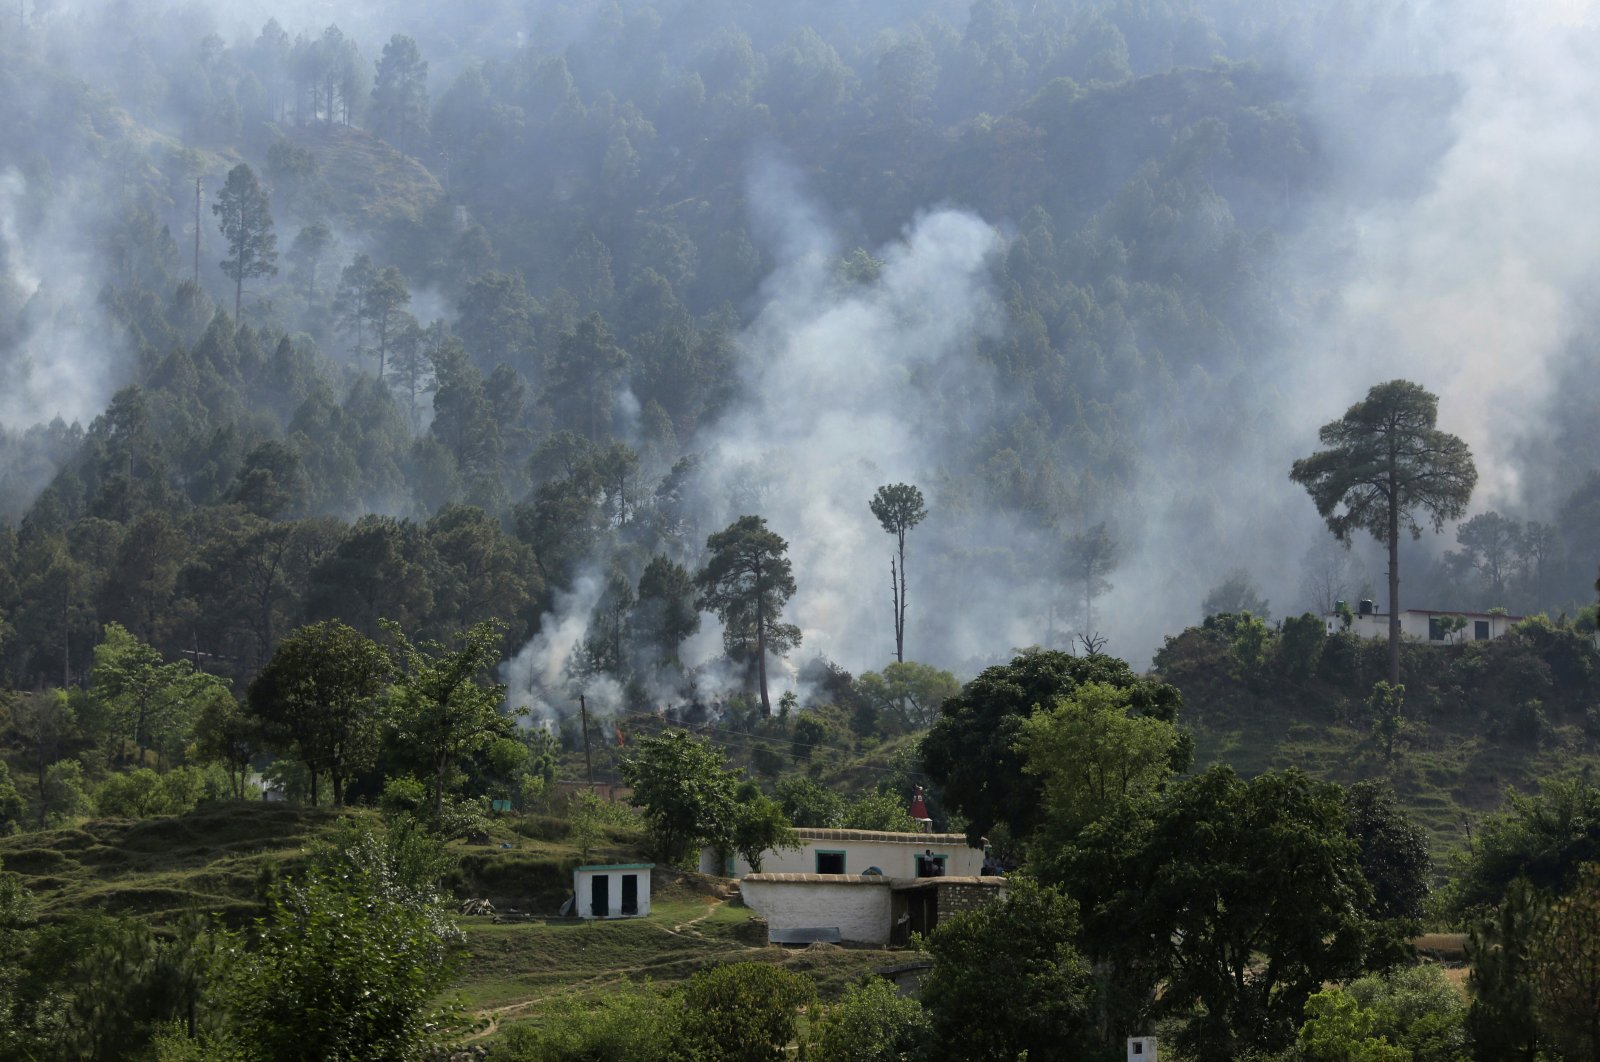 Smoke rises from a mortar shell fired from the Pakistan side of the border in a civilian area at Bhawani village at Nowshera sector, along the highly militarized Line of Control that divides the region between India and Pakistan, May 13, 2017. (AP Photo)